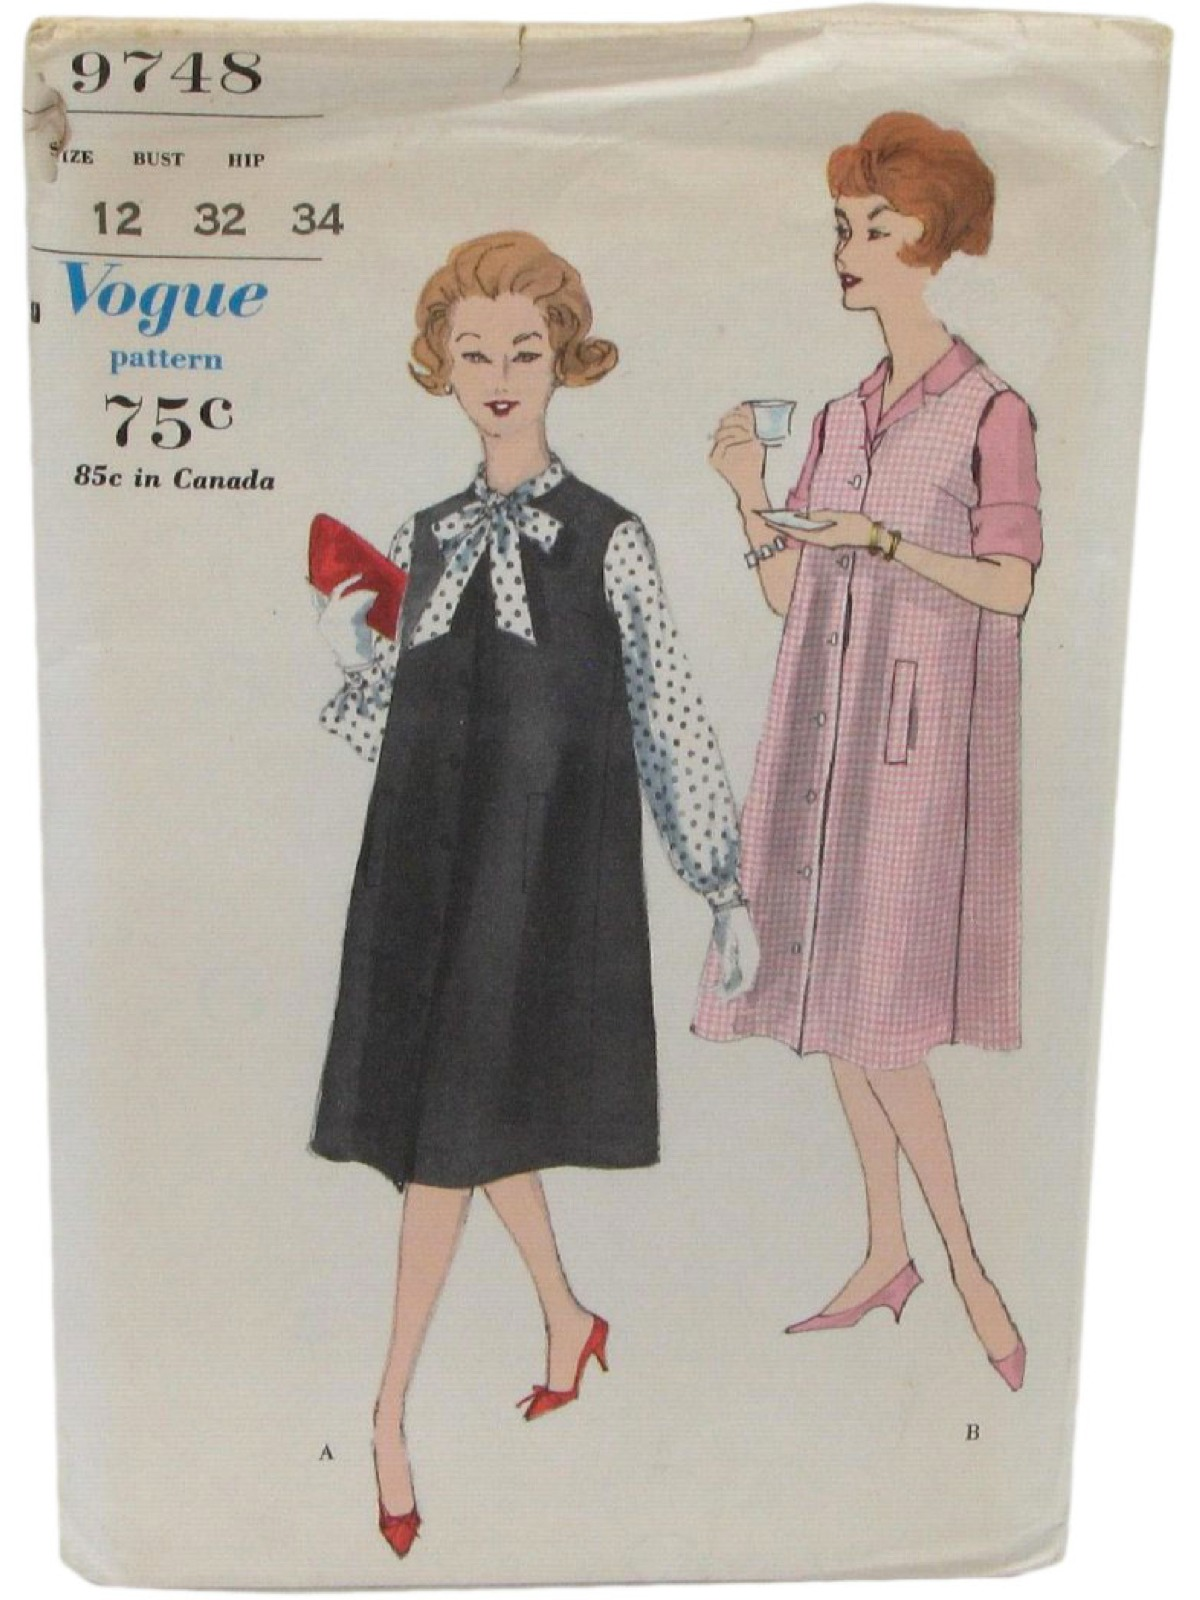 Retro 1970s Sewing Pattern 70s Vogue Pattern No 9748 226